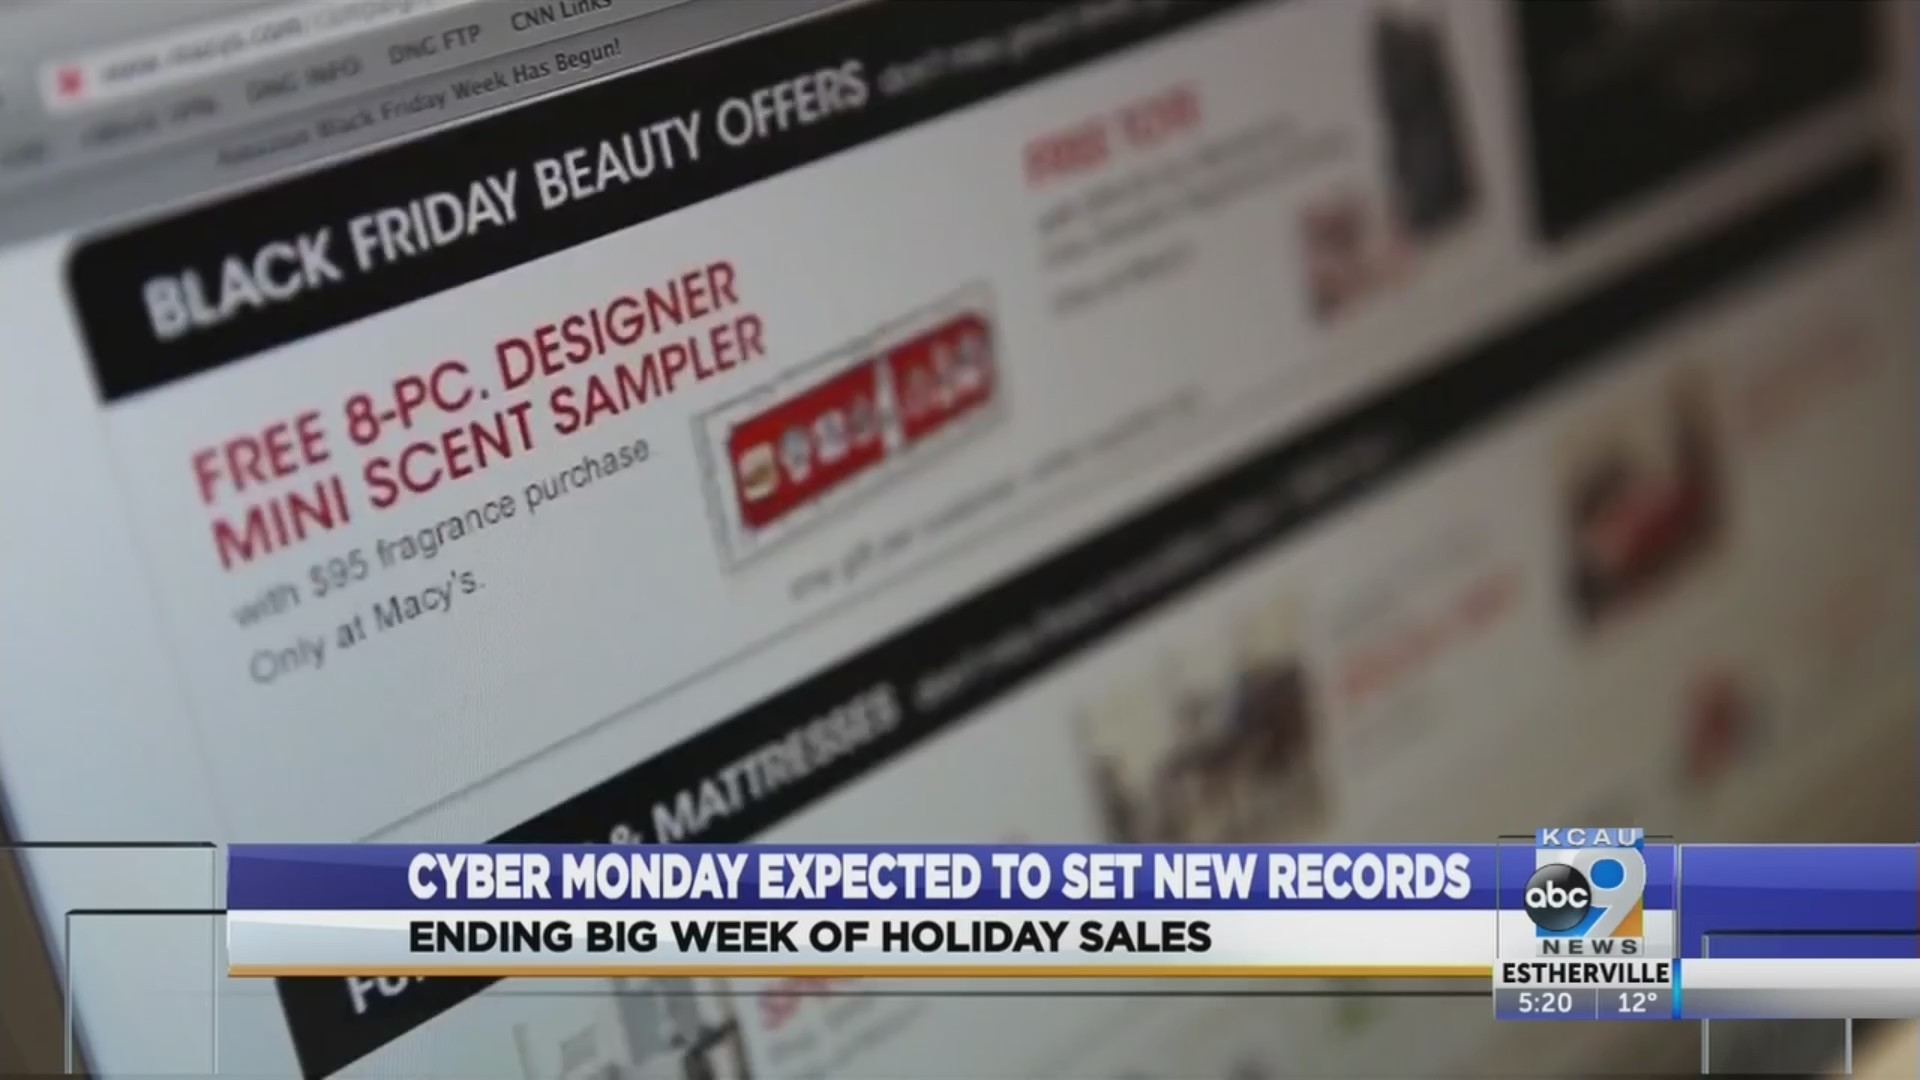 Cyber Monday Expected To Set New Records